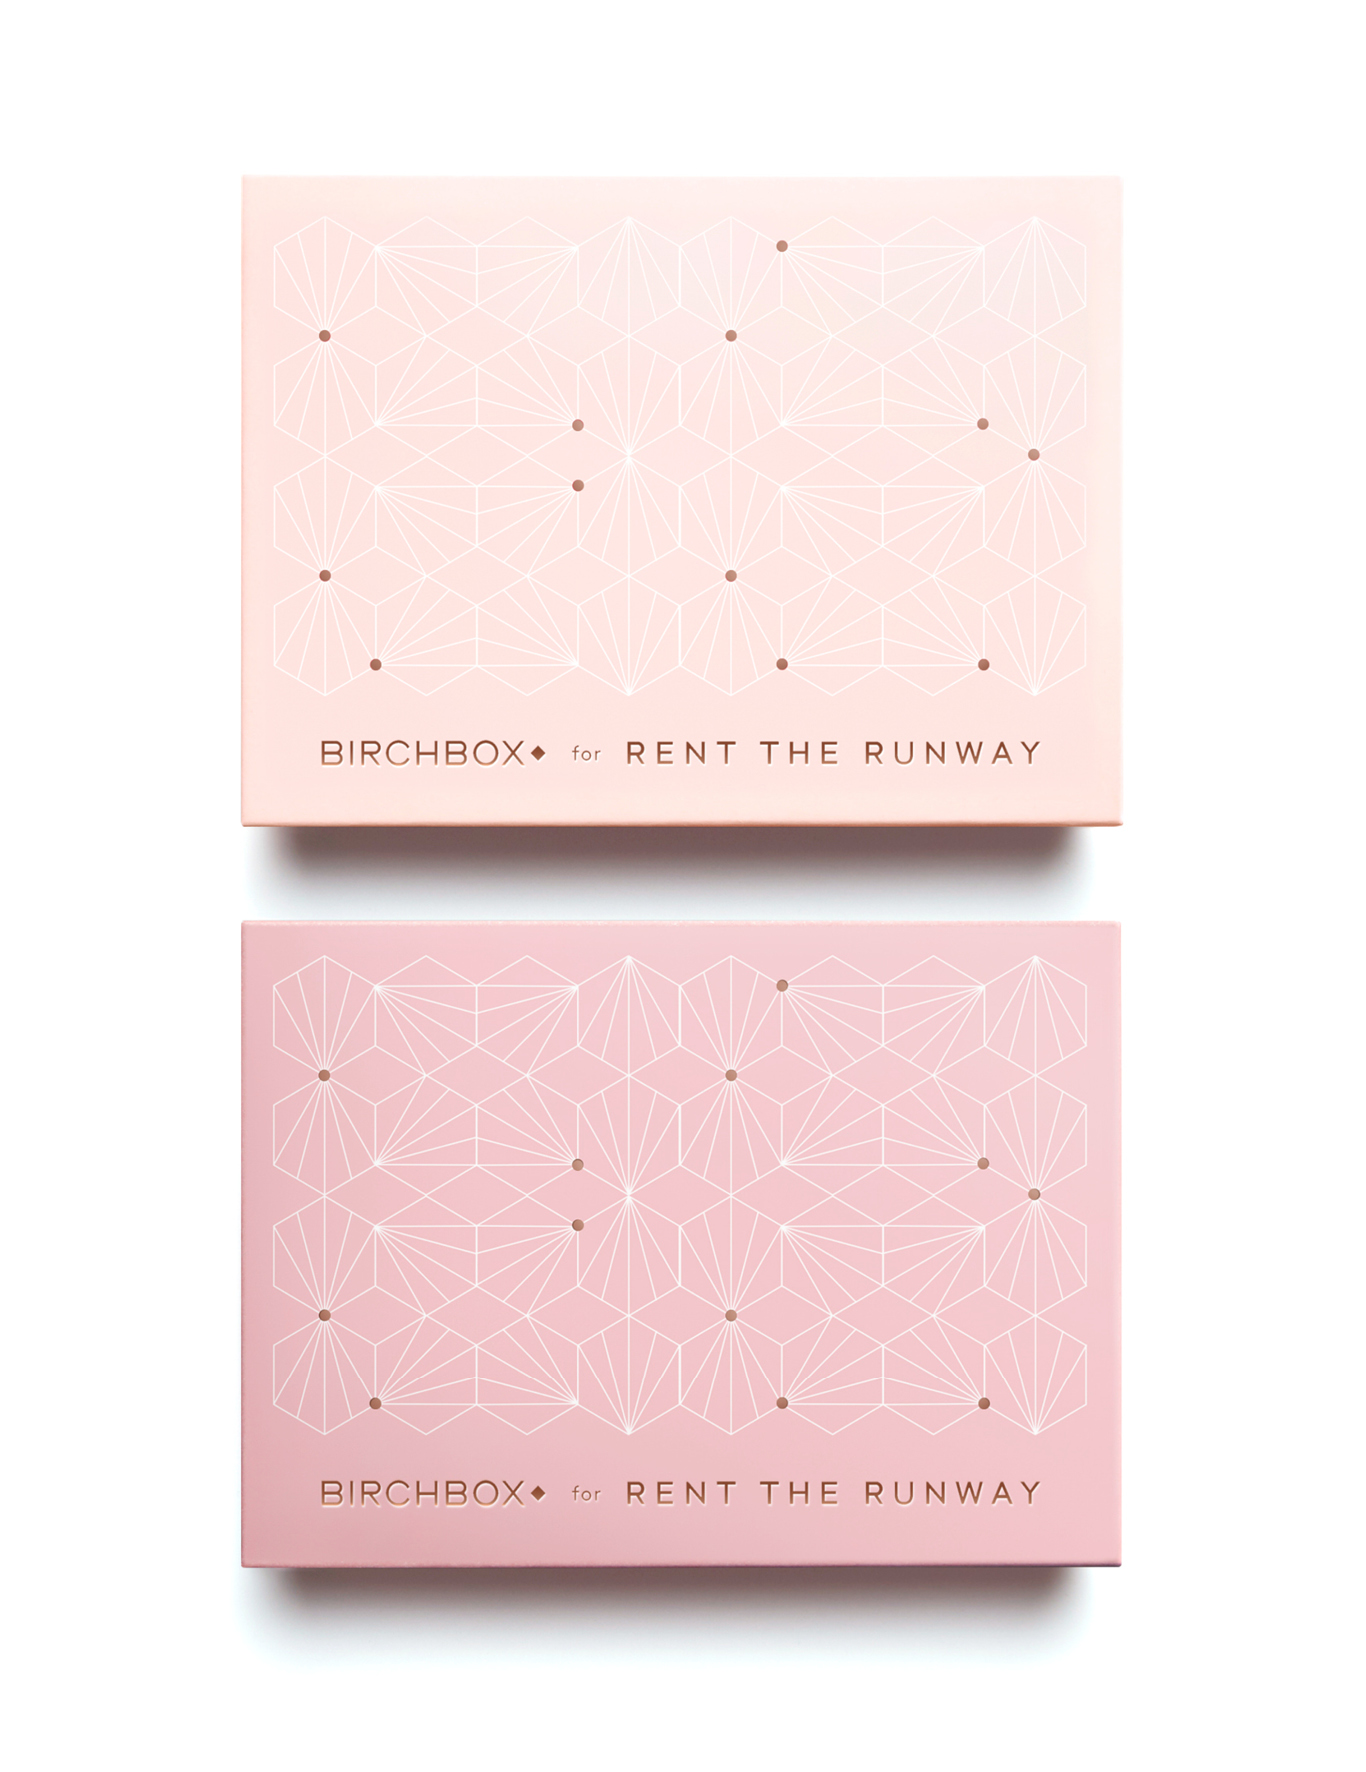 Birchbox for Rent the Runway